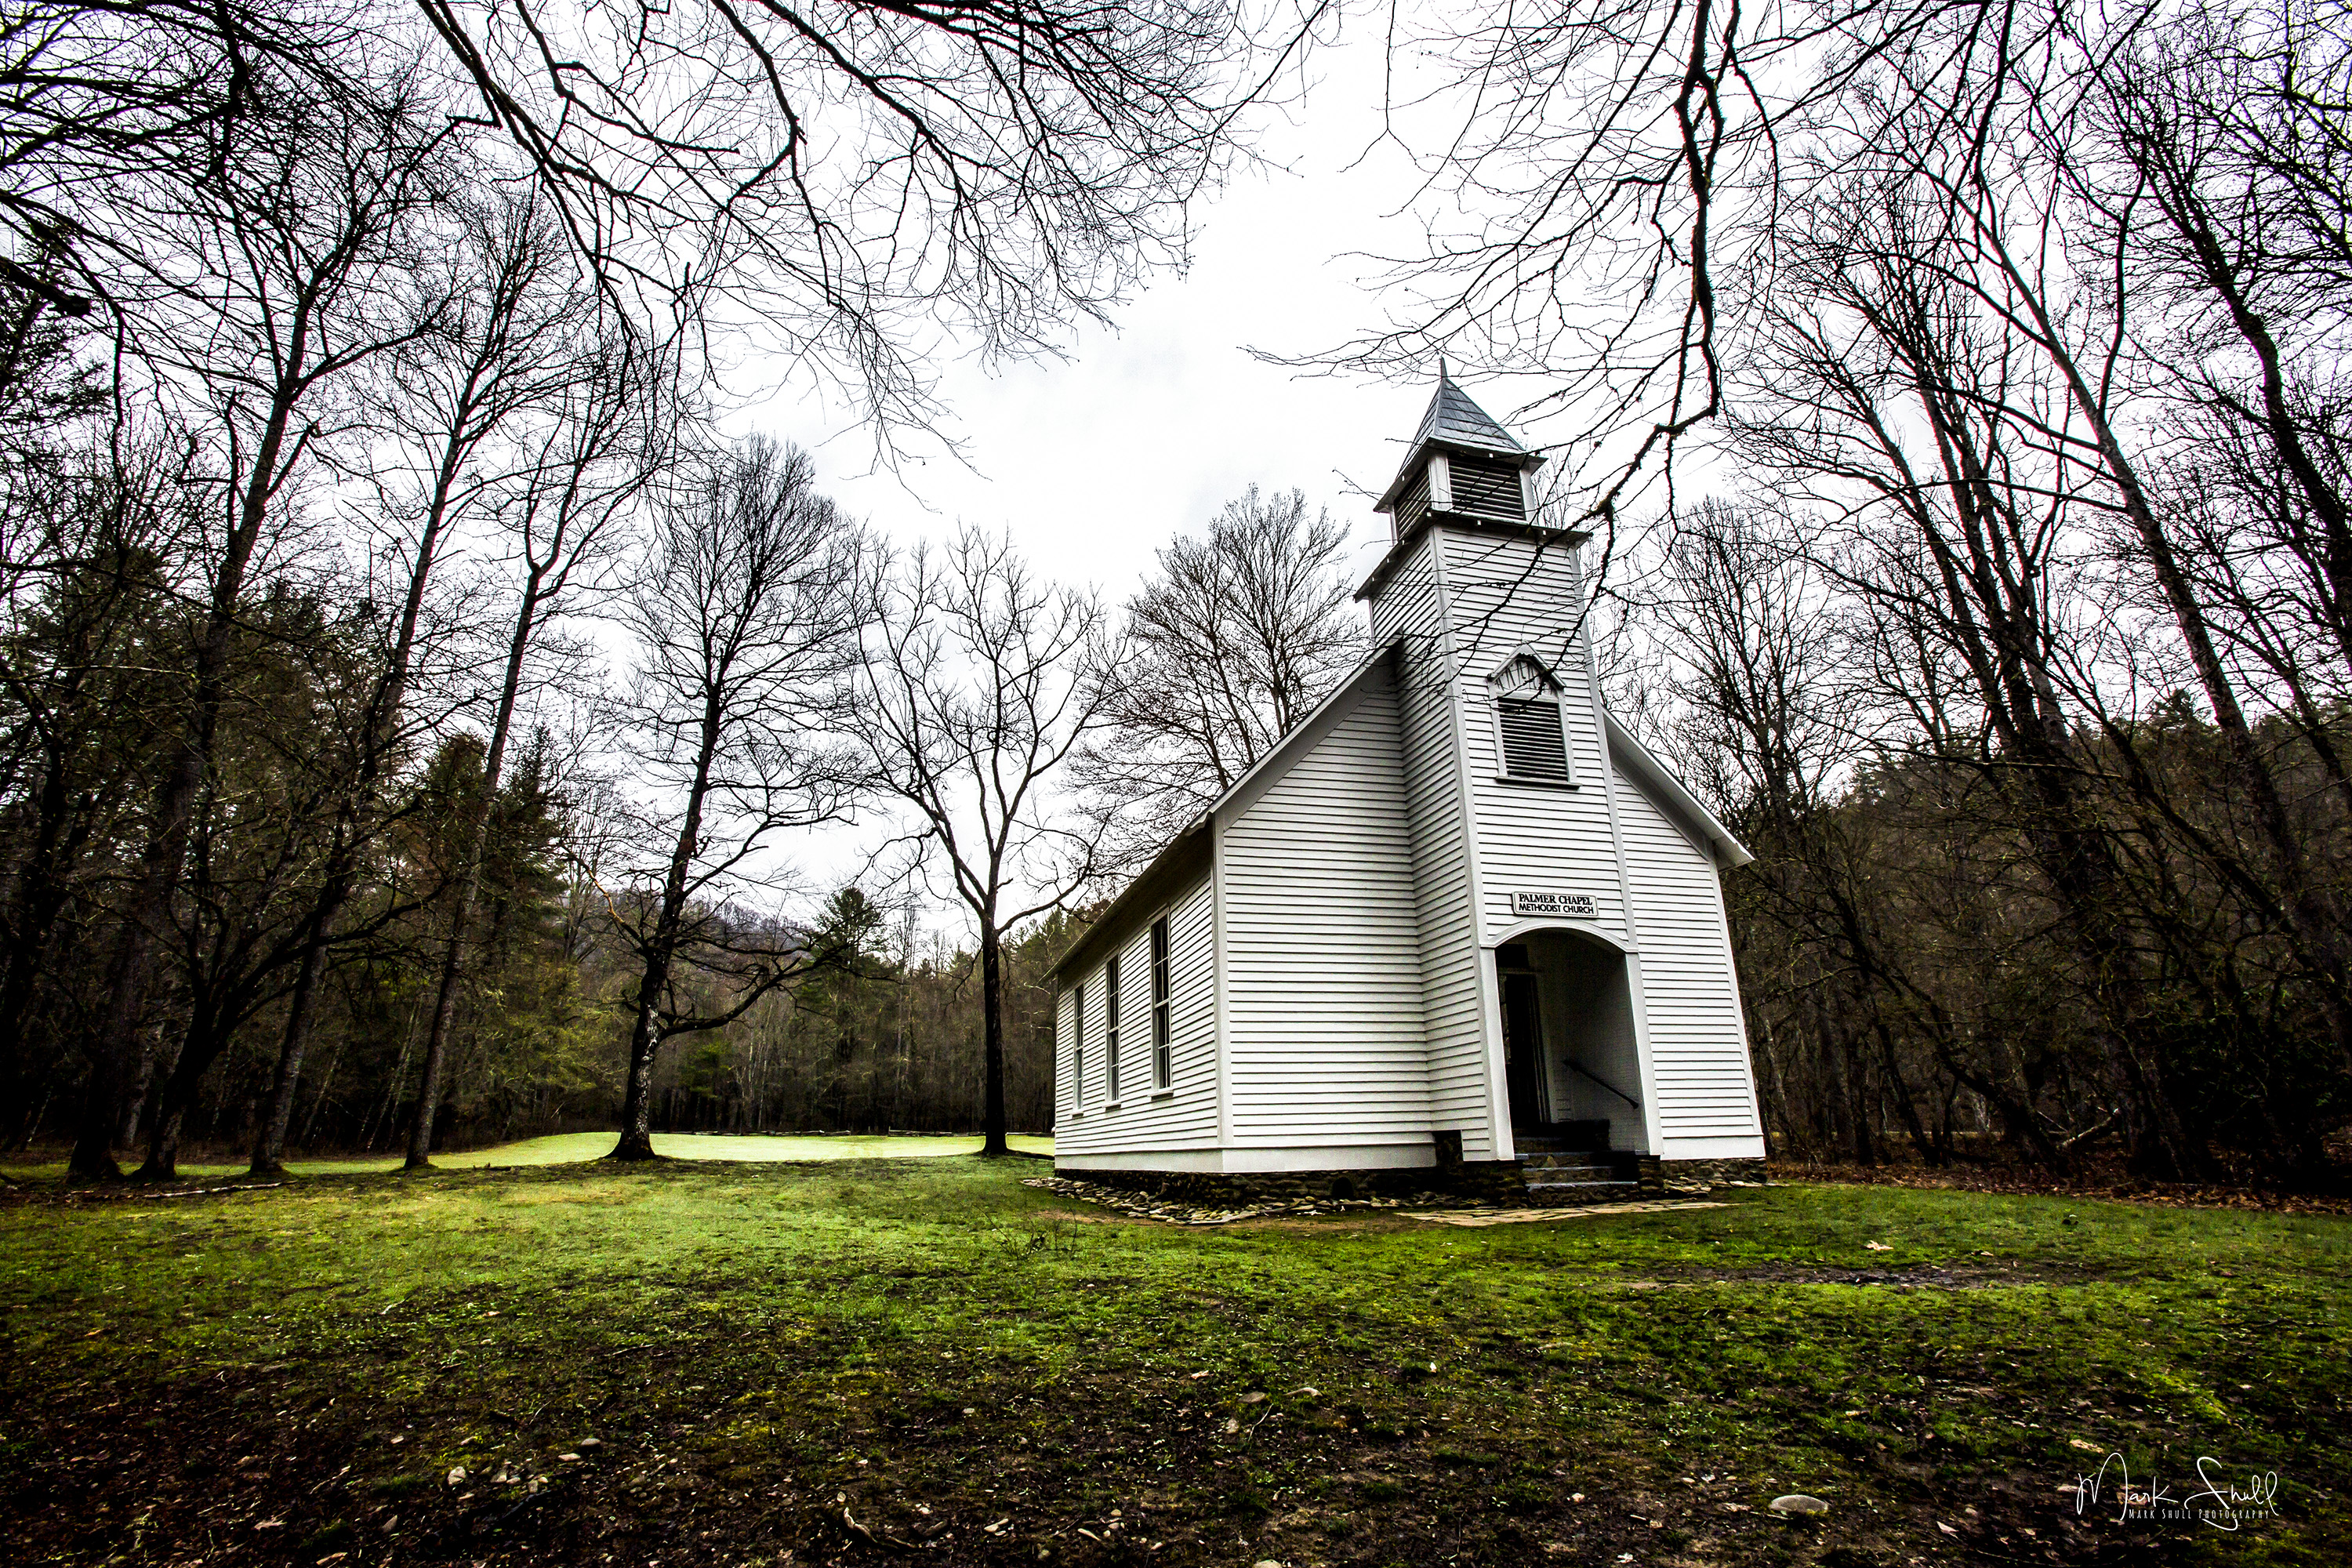 Cataloochee Front Methodist Church